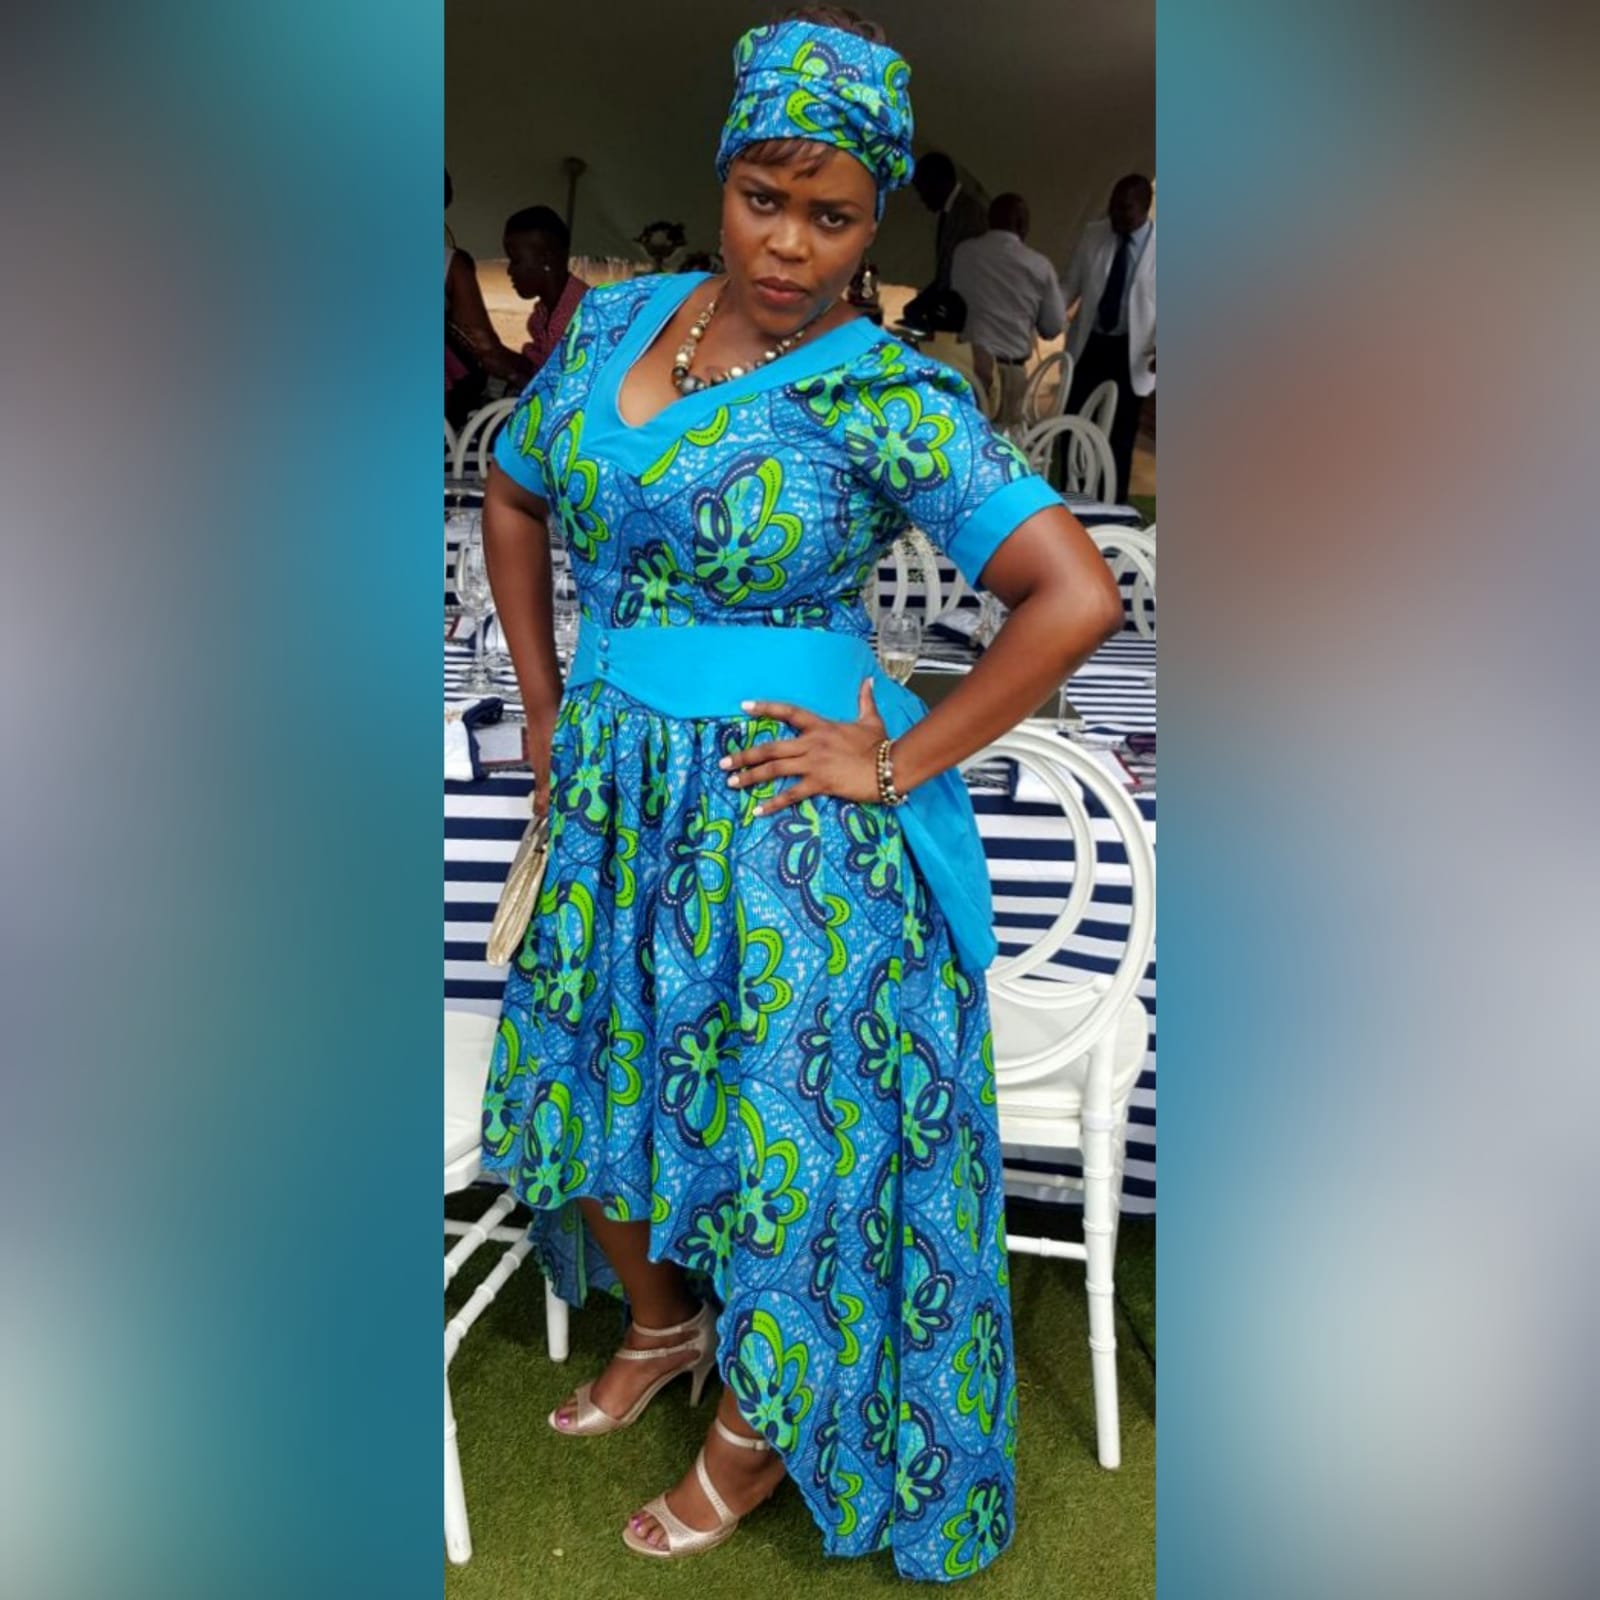 Modern traditional green and blue high low dress 1 modern traditional green and blue hi lo dress with a v neckline, 3/4 sleeves and a back peplum with a waistbelt. Matching doek.